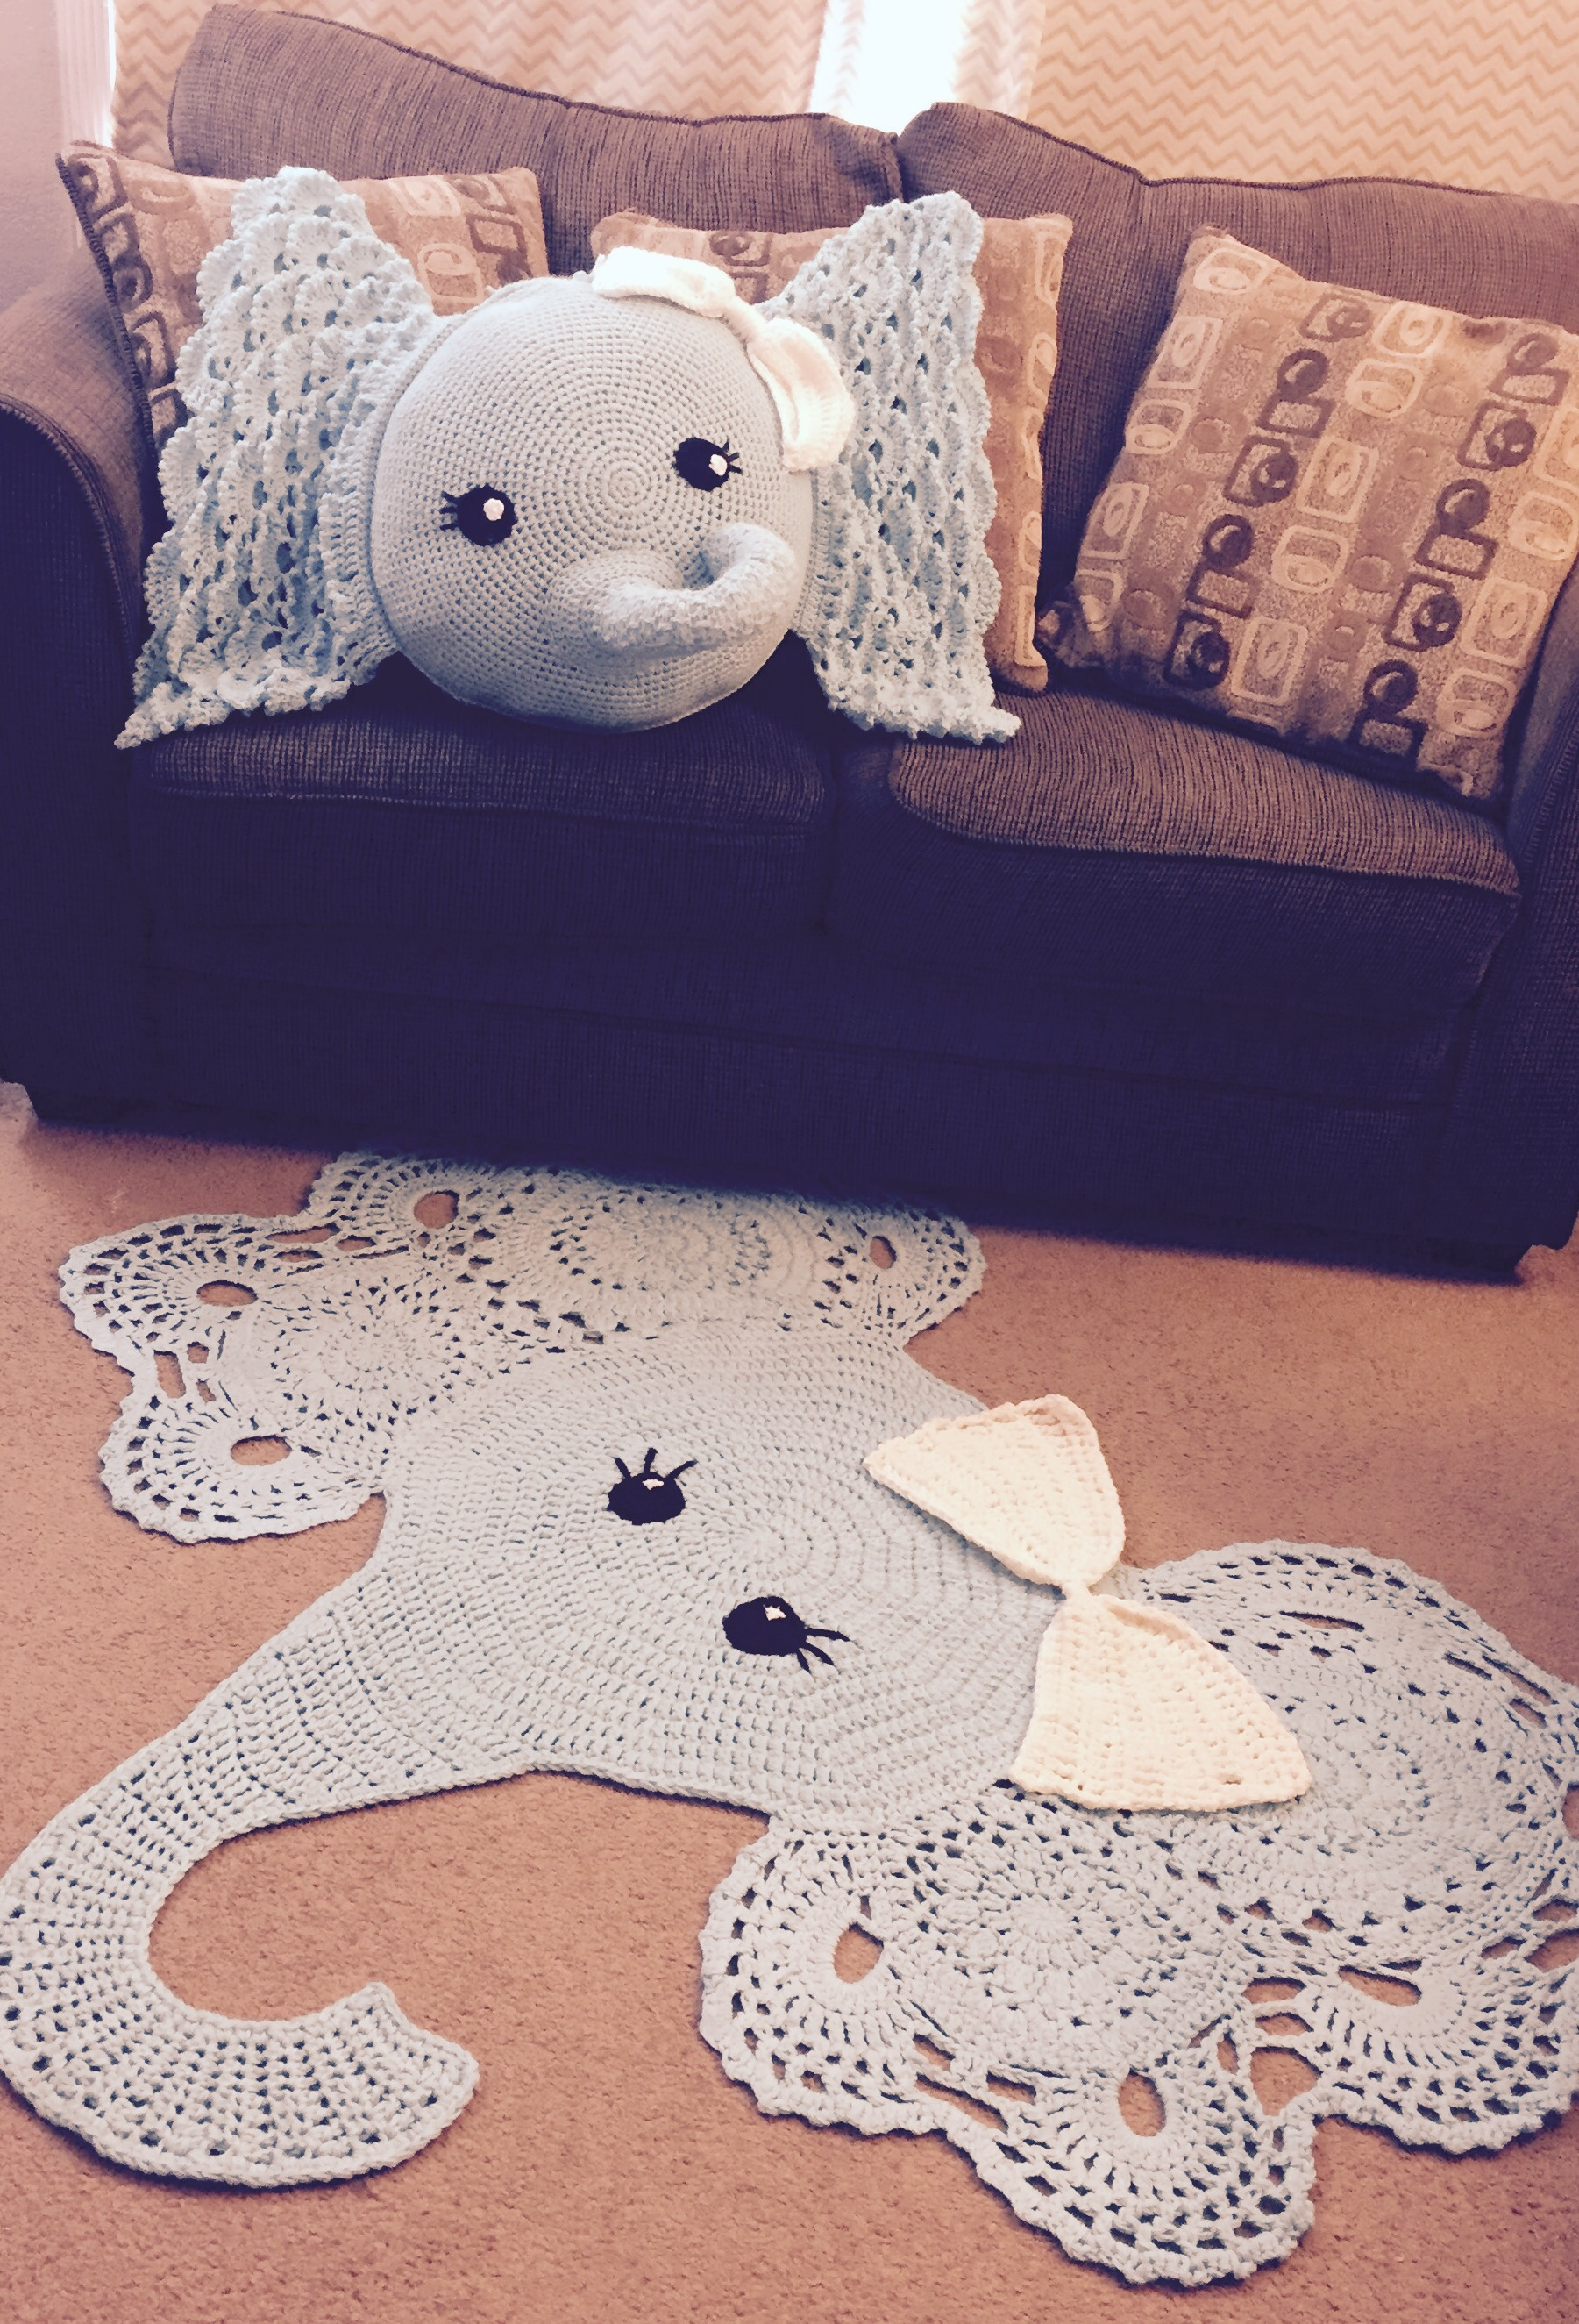 Crochet Elephant Pillow and Rug Pattern Review – Family Bugs